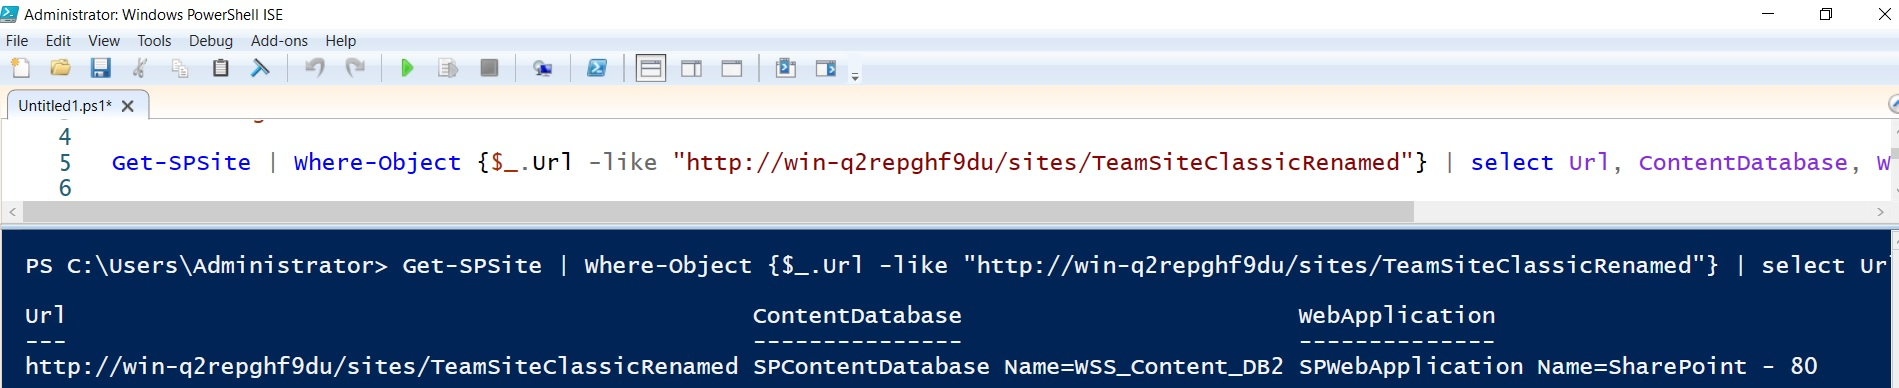 check content database of site collection